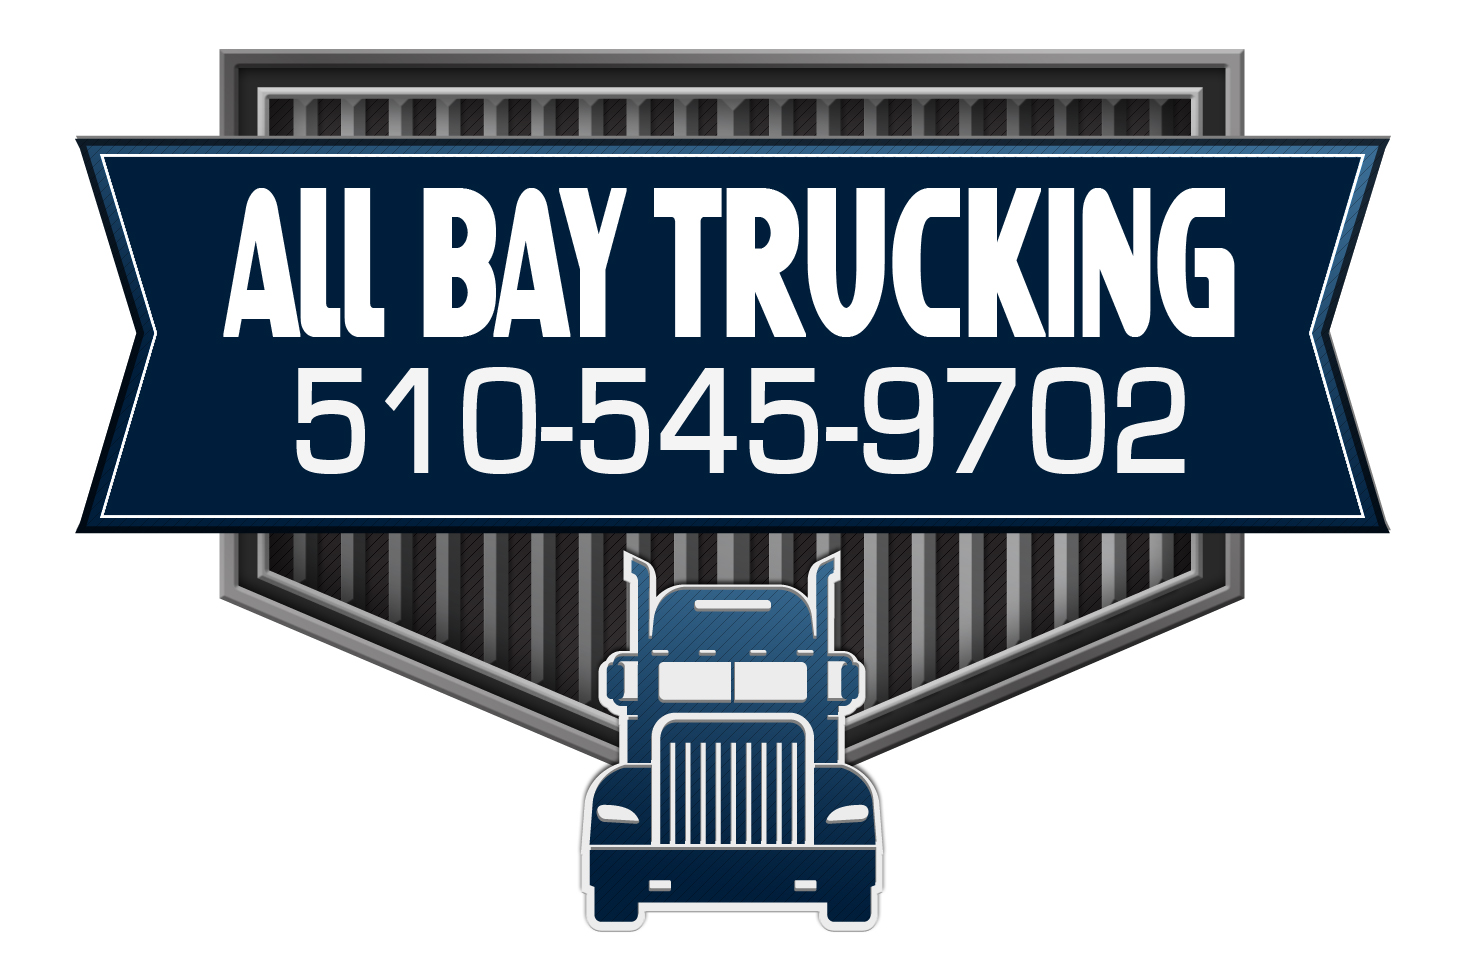 All Bay Trucking, Oakland, CA - Localwise business profile picture